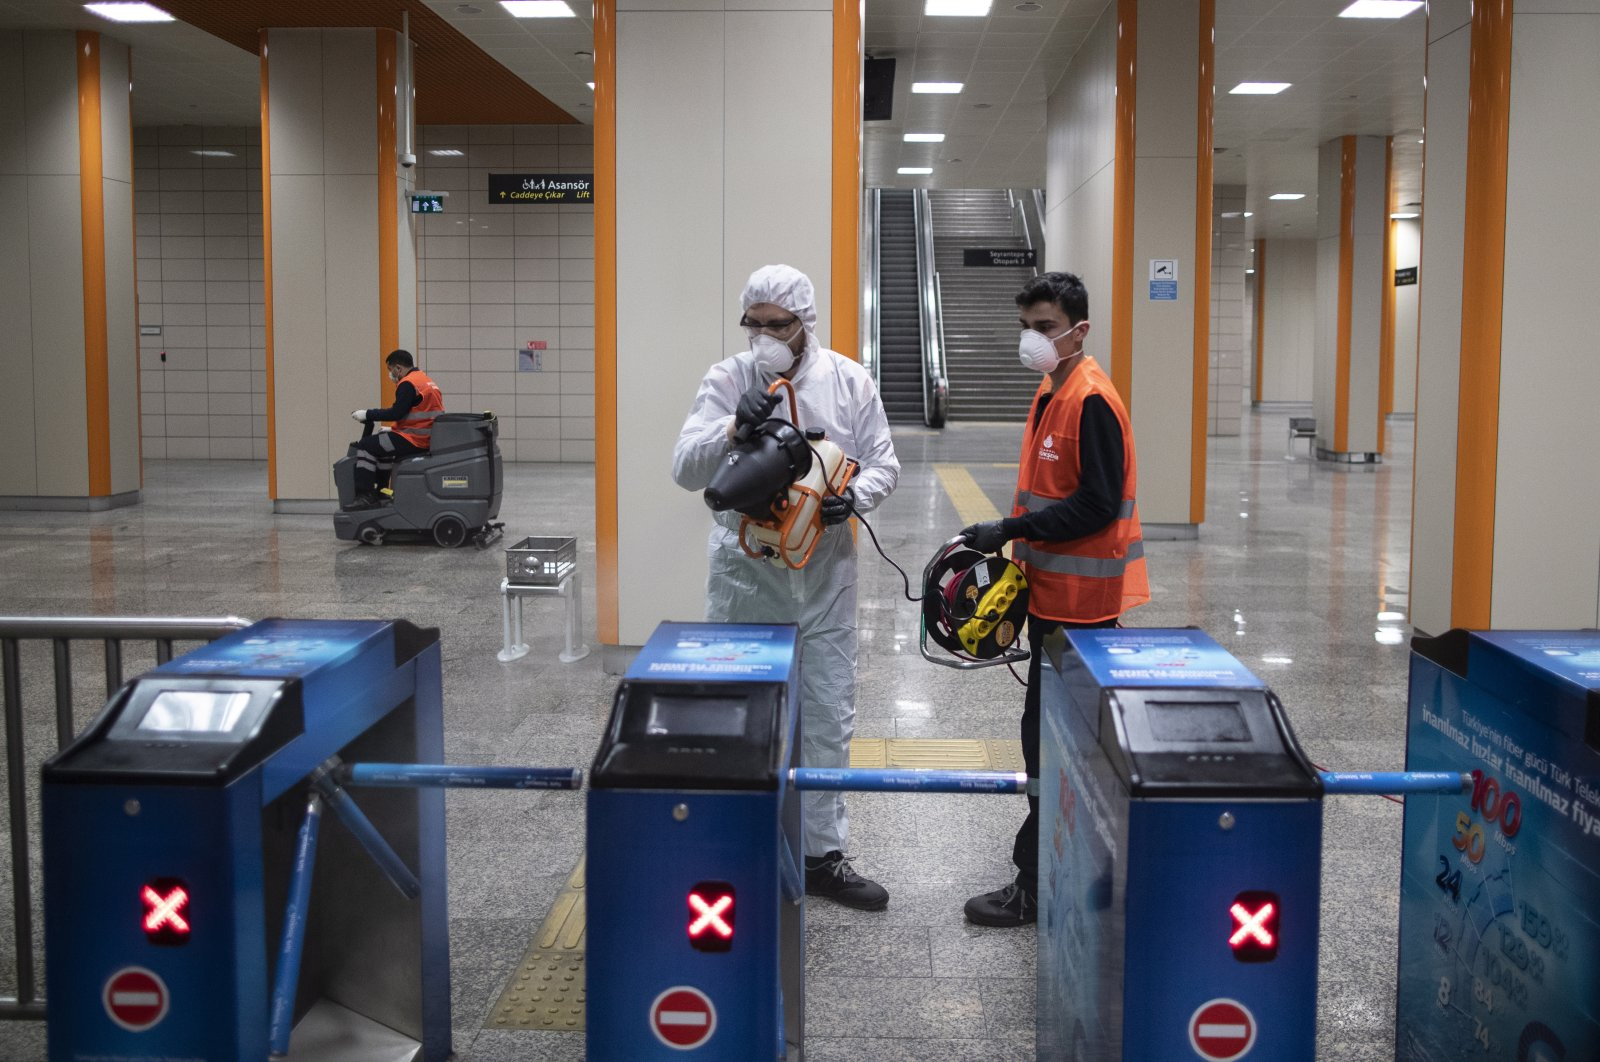 Employees of the Istanbul Metropolitan Municipality disinfects a metro station to prevent the spread of the novel coronavirus, COVID-19, in Istanbul, Wednesday, March 11, 2020. (EPA Photo)